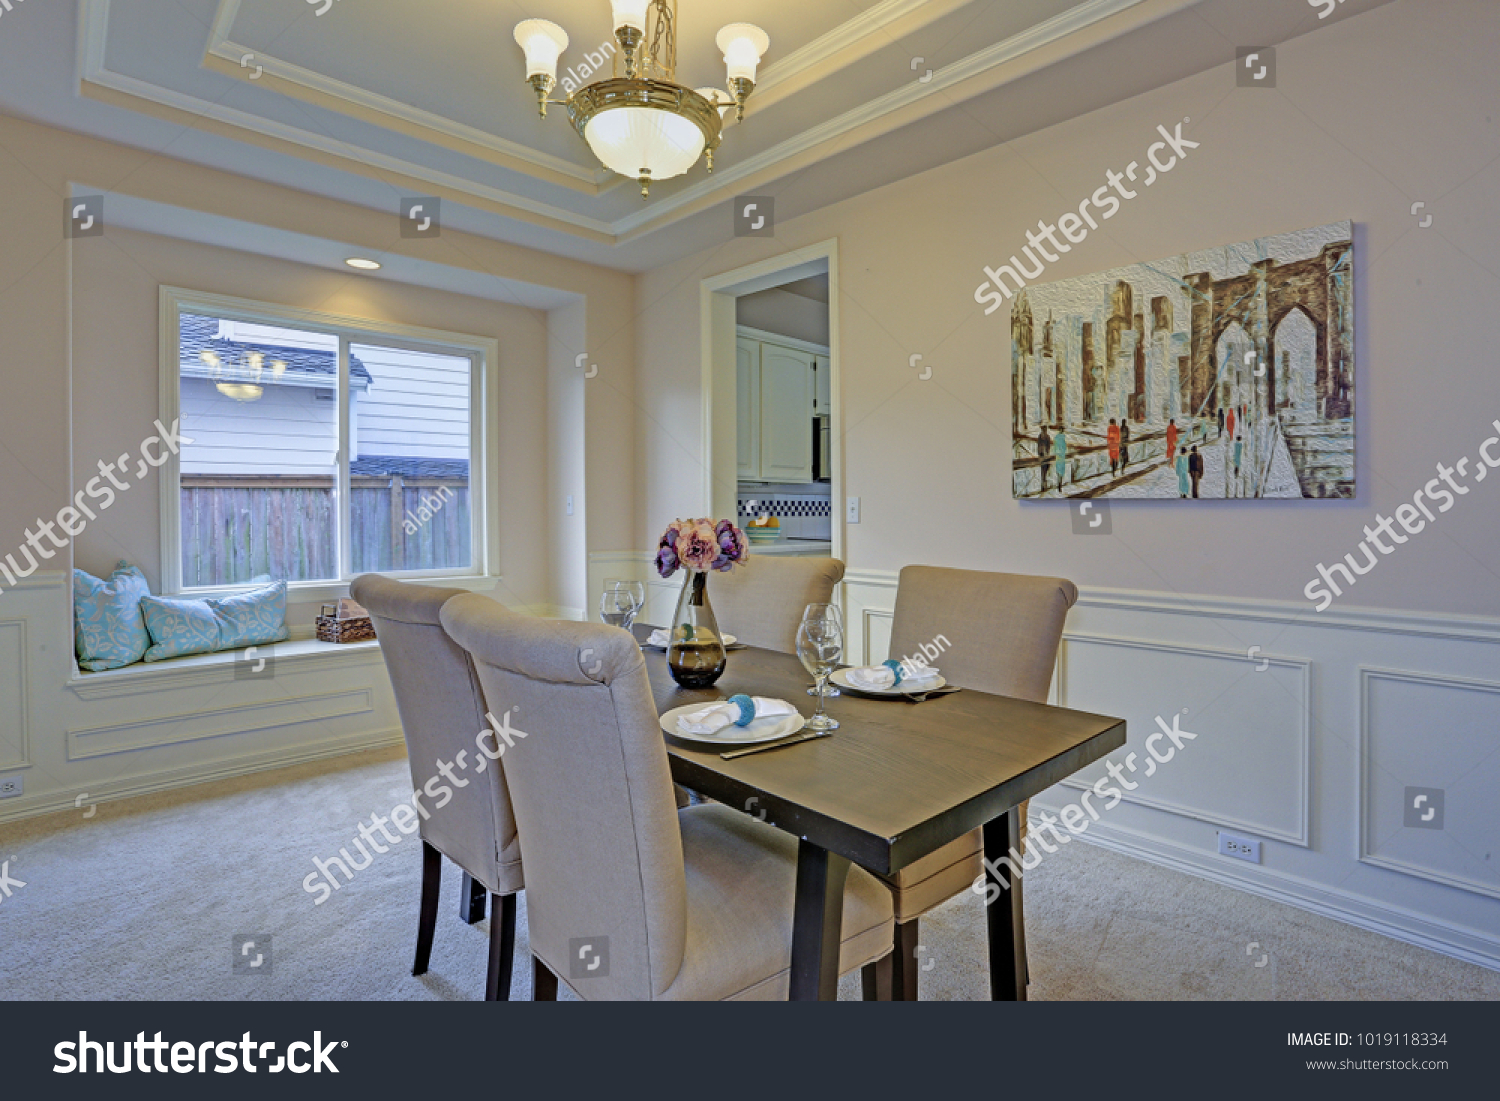 Chic Dining Room With Light Grey Walls Accented With Wall Panel Mouldings  Under Tray Ceiling.